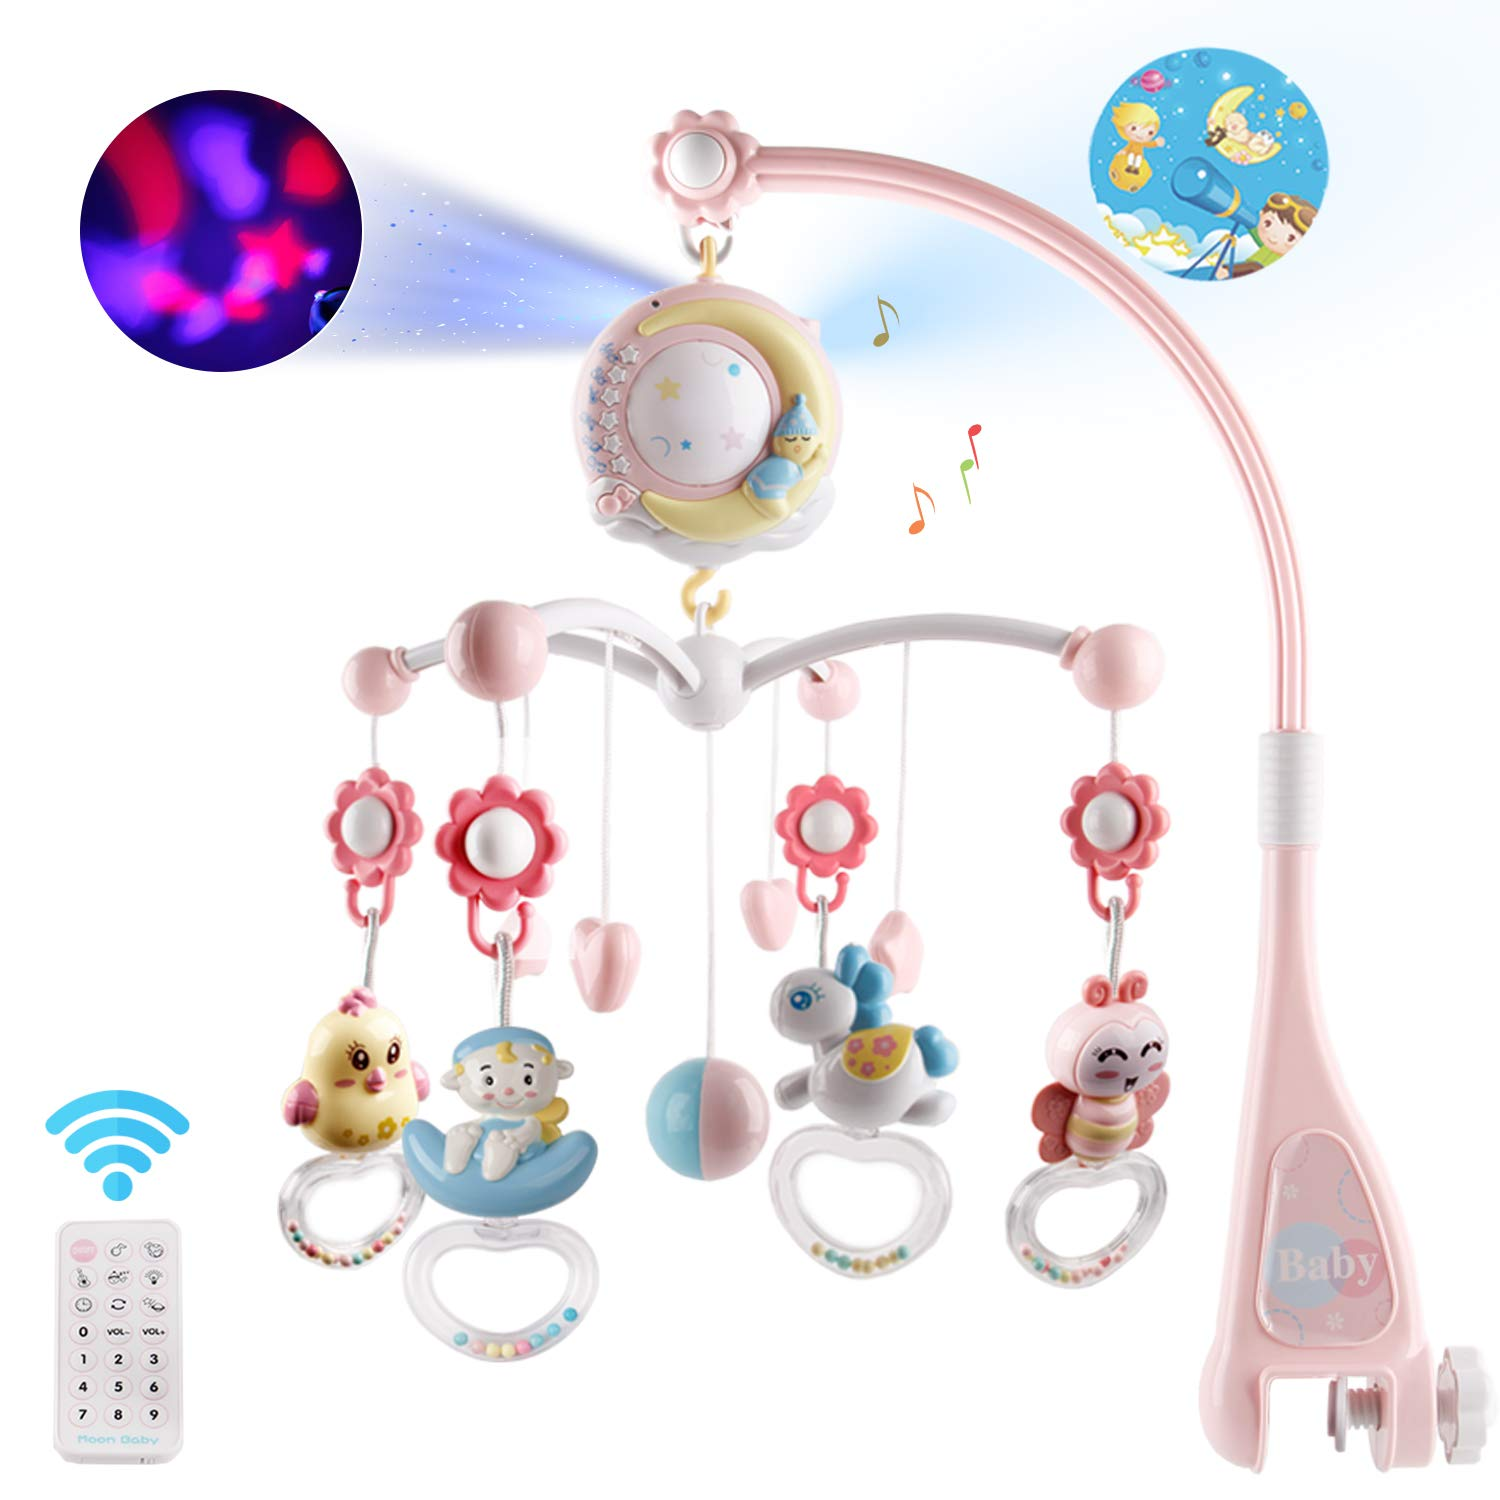 Baby Musical Crib Mobile with Timing Function Projector and Lights,Hanging Rotating Rattles and Remote Control Music Box with 150 Melodies,Toy for Newborn 0-24 Months by Mini Tudou (Image #1)